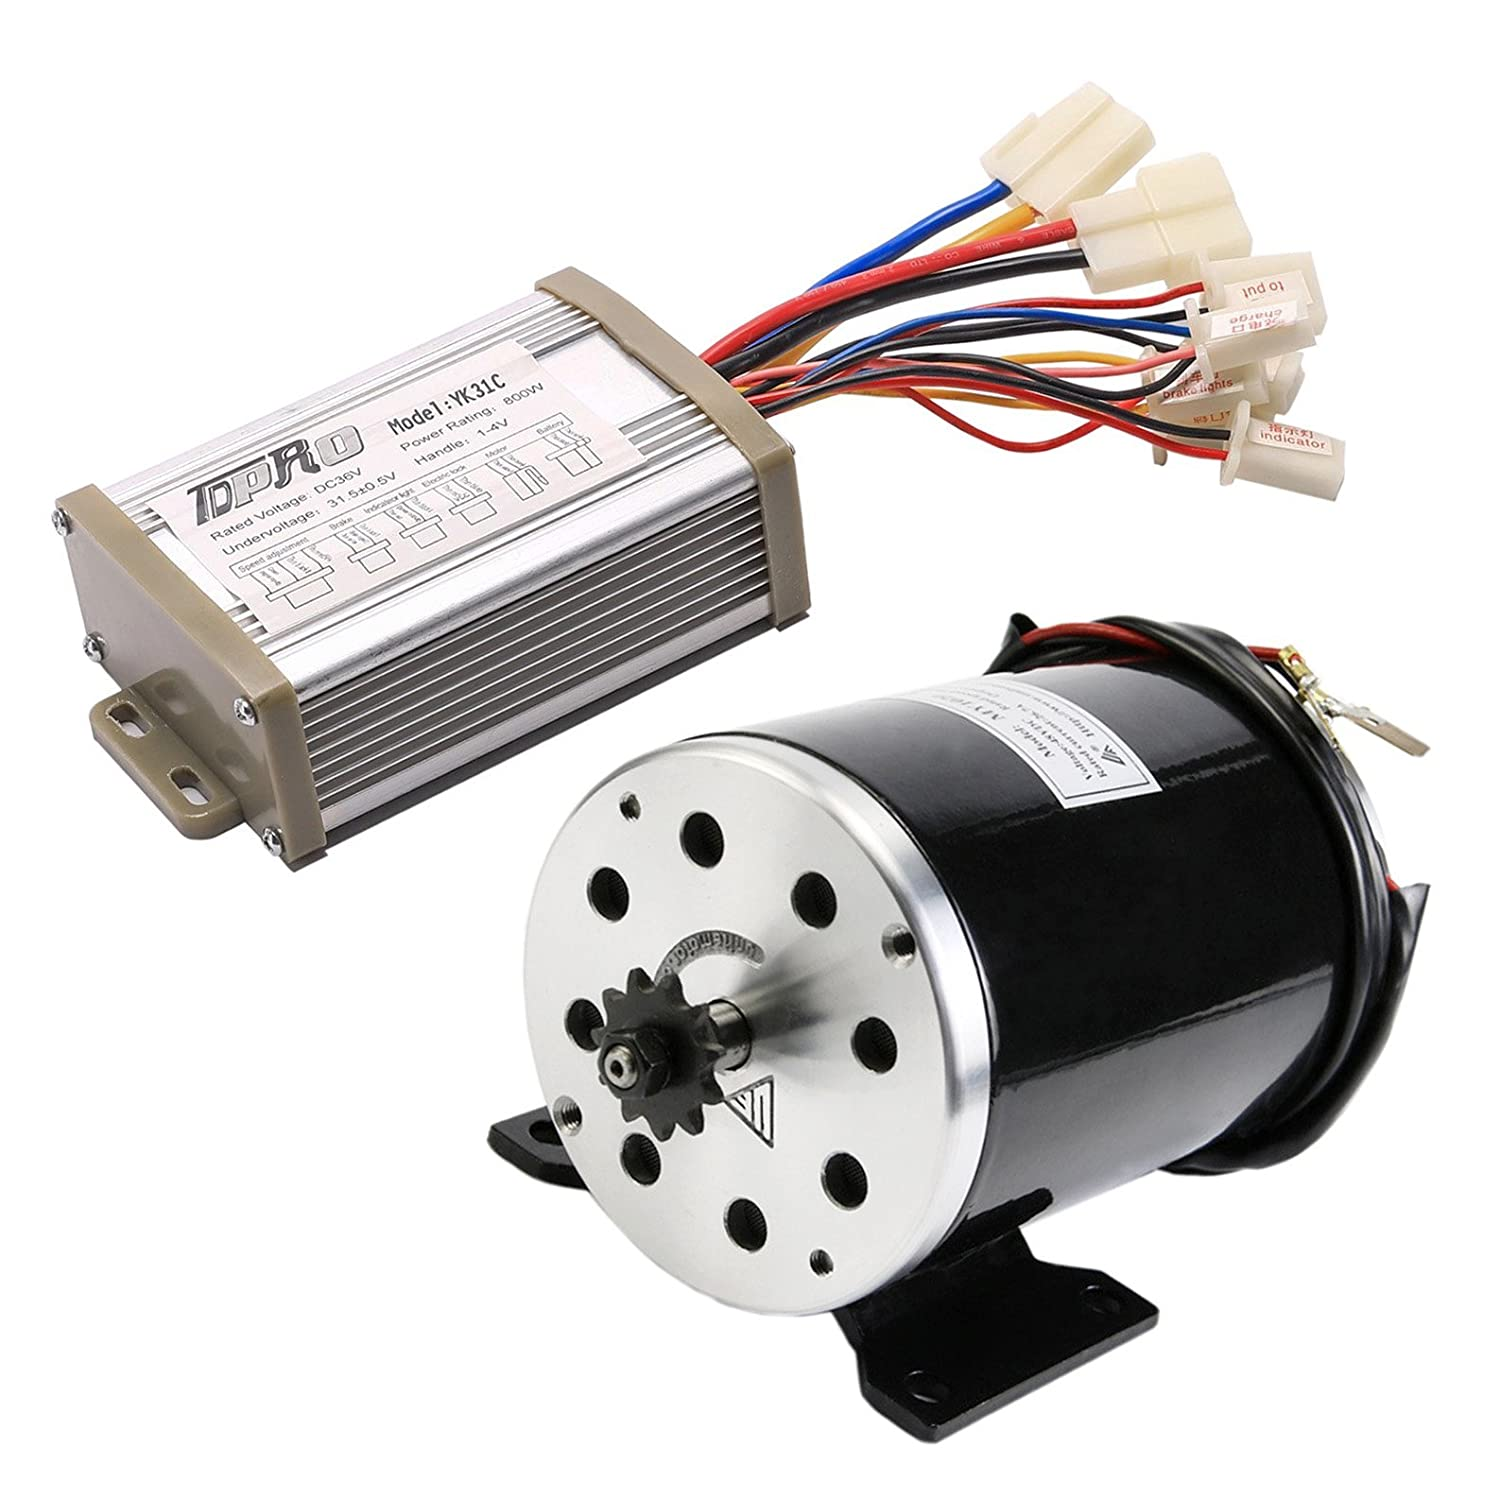 Tdpro Jcmoto 36v 800w Brushed Speed Motor Controller 48v Brushless Electric Bicycle Bldc From Reliable Set Scooter Go Kart E Bike Tricycle Moped Sports Outdoors